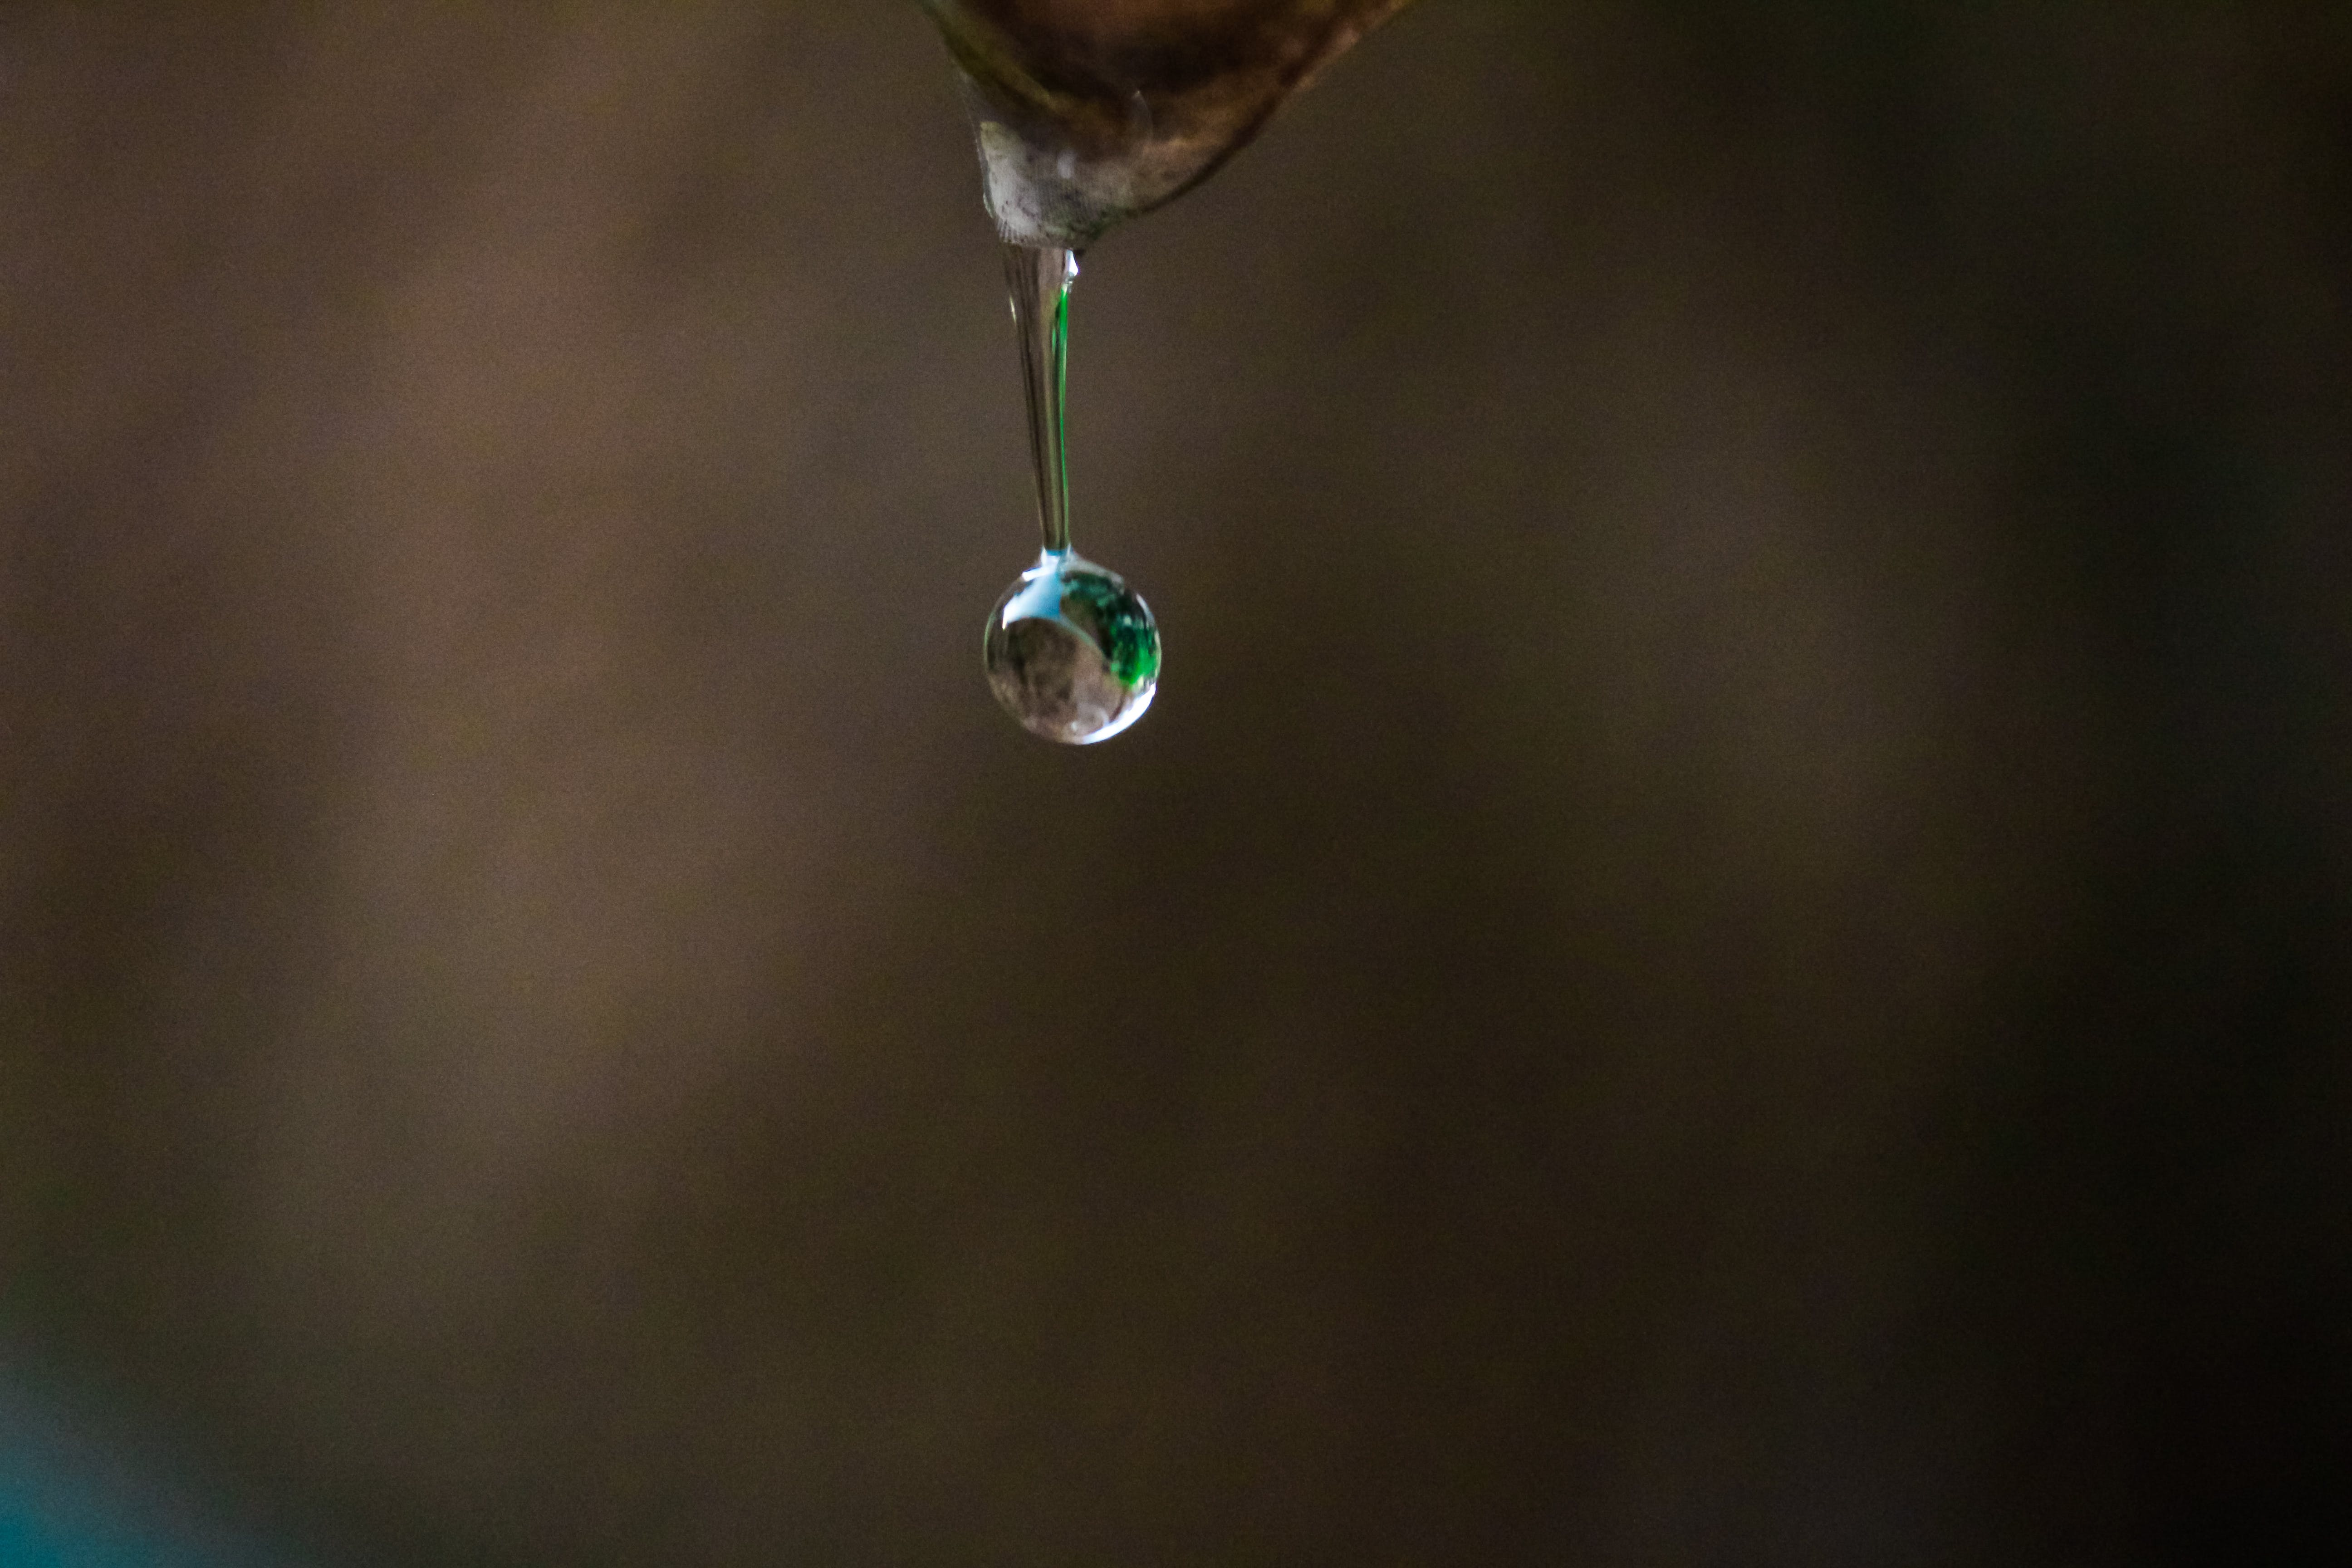 Free stock photo of #waterdrop #water #photography #photographer